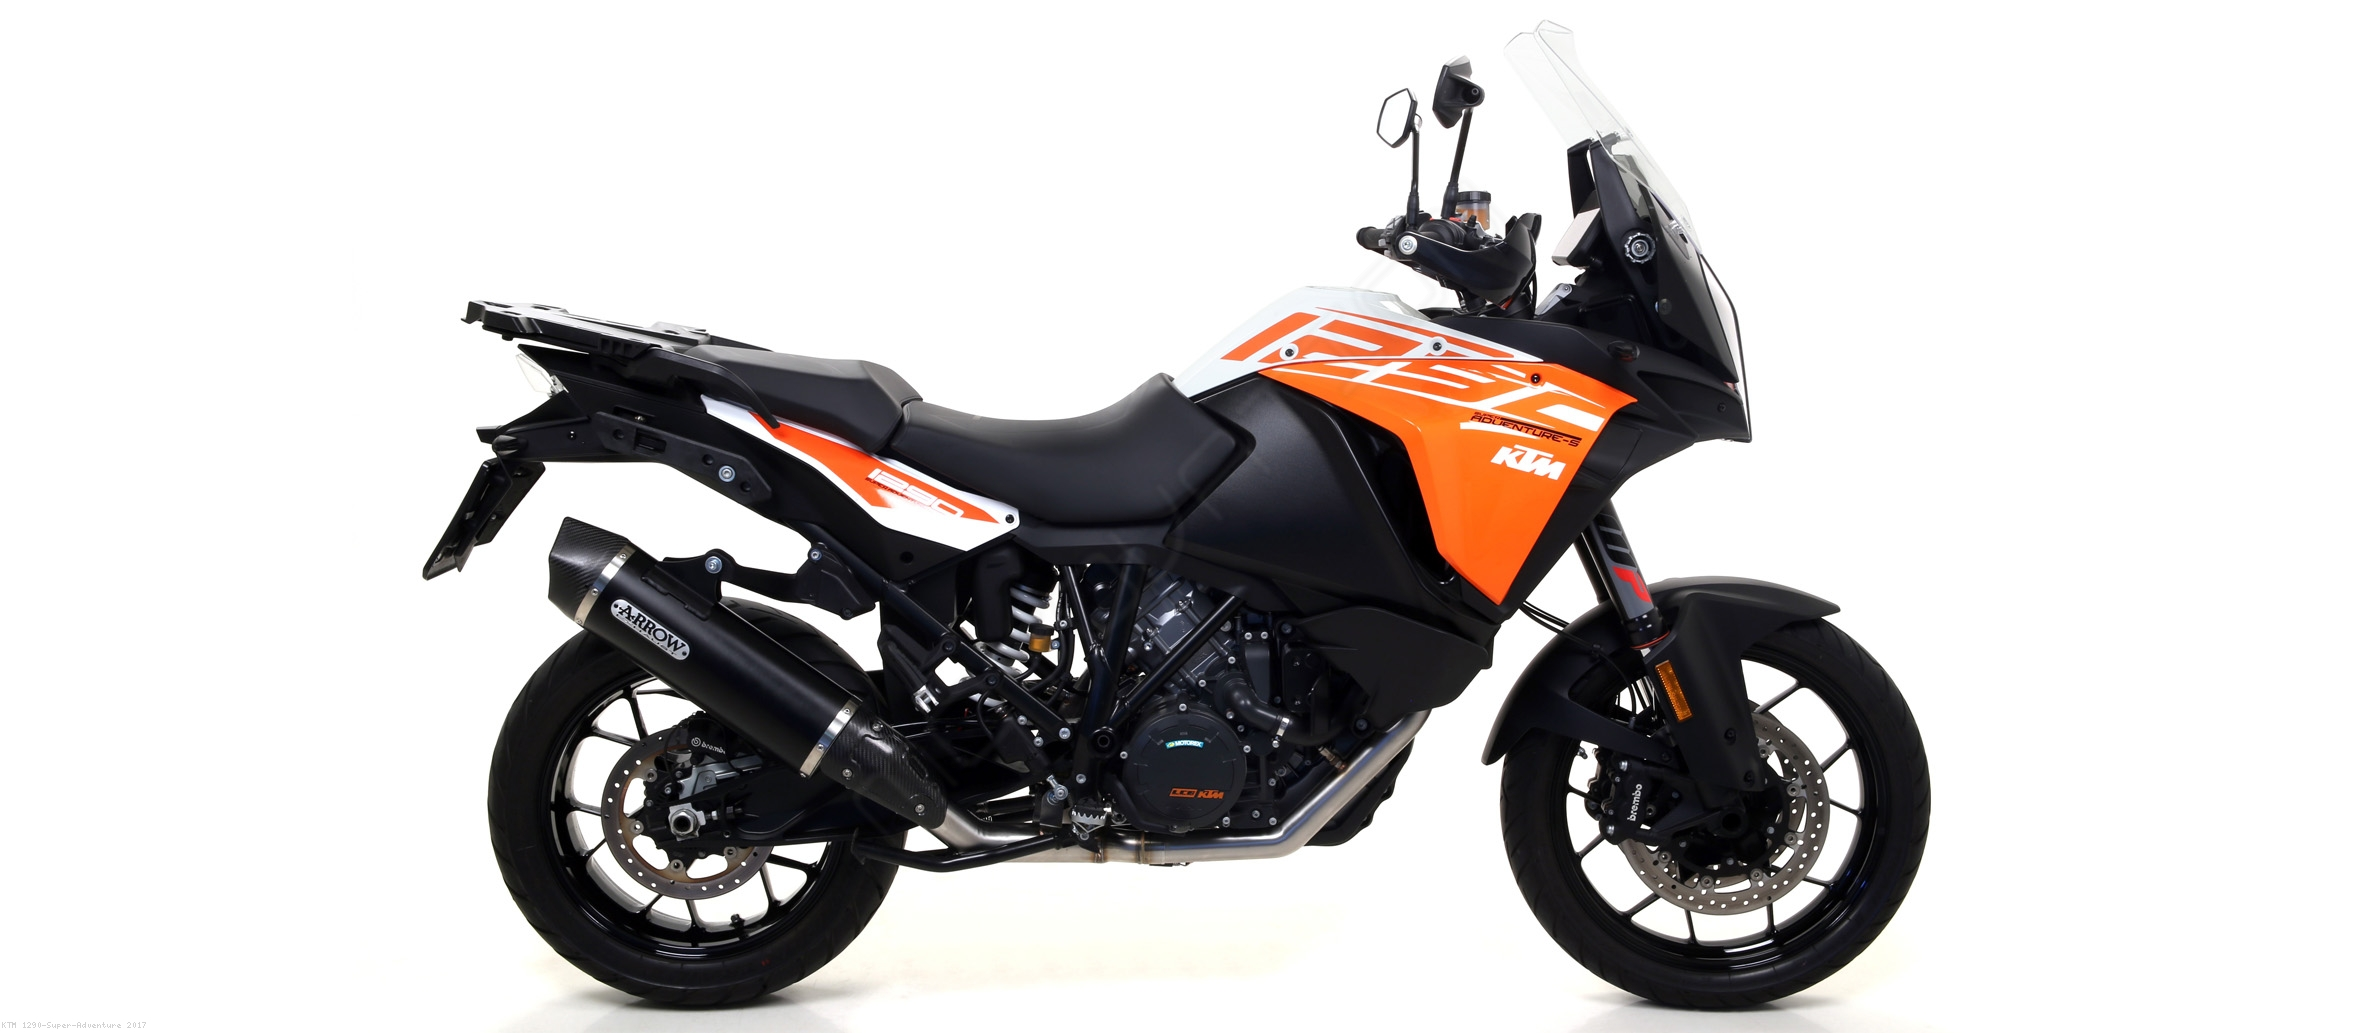 maxi race tech exhaust by arrow ktm 1290 super adventure 2017 71809. Black Bedroom Furniture Sets. Home Design Ideas